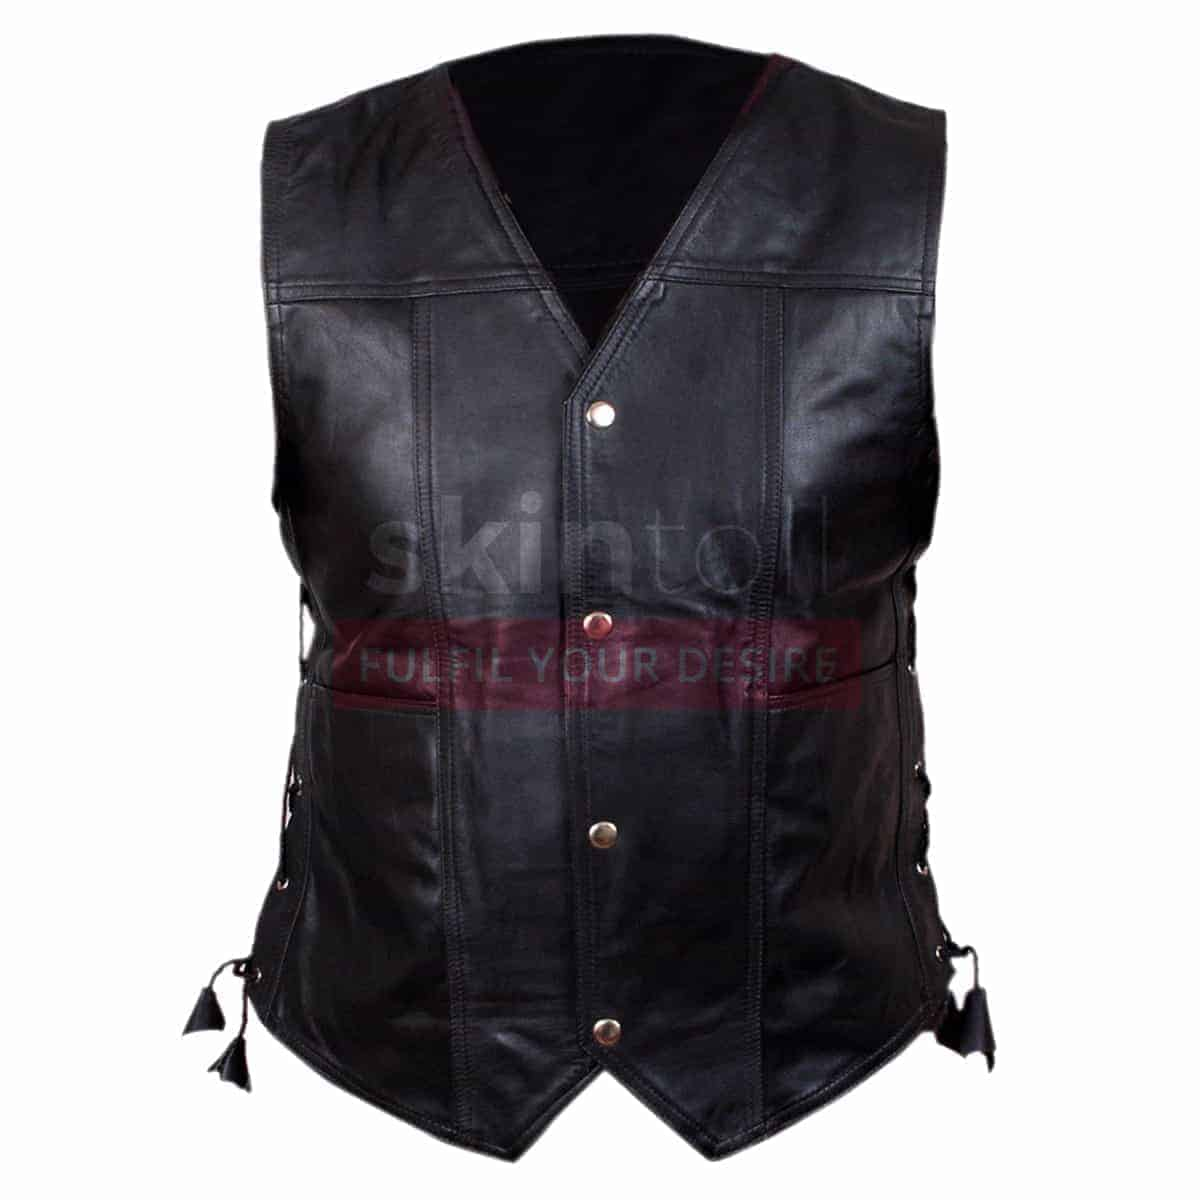 Choose the perfect Jamin Leather vest for the classic American man in your family. A wide variety of American Classic vest styles for men along with biker vests at greatly discounted prices.